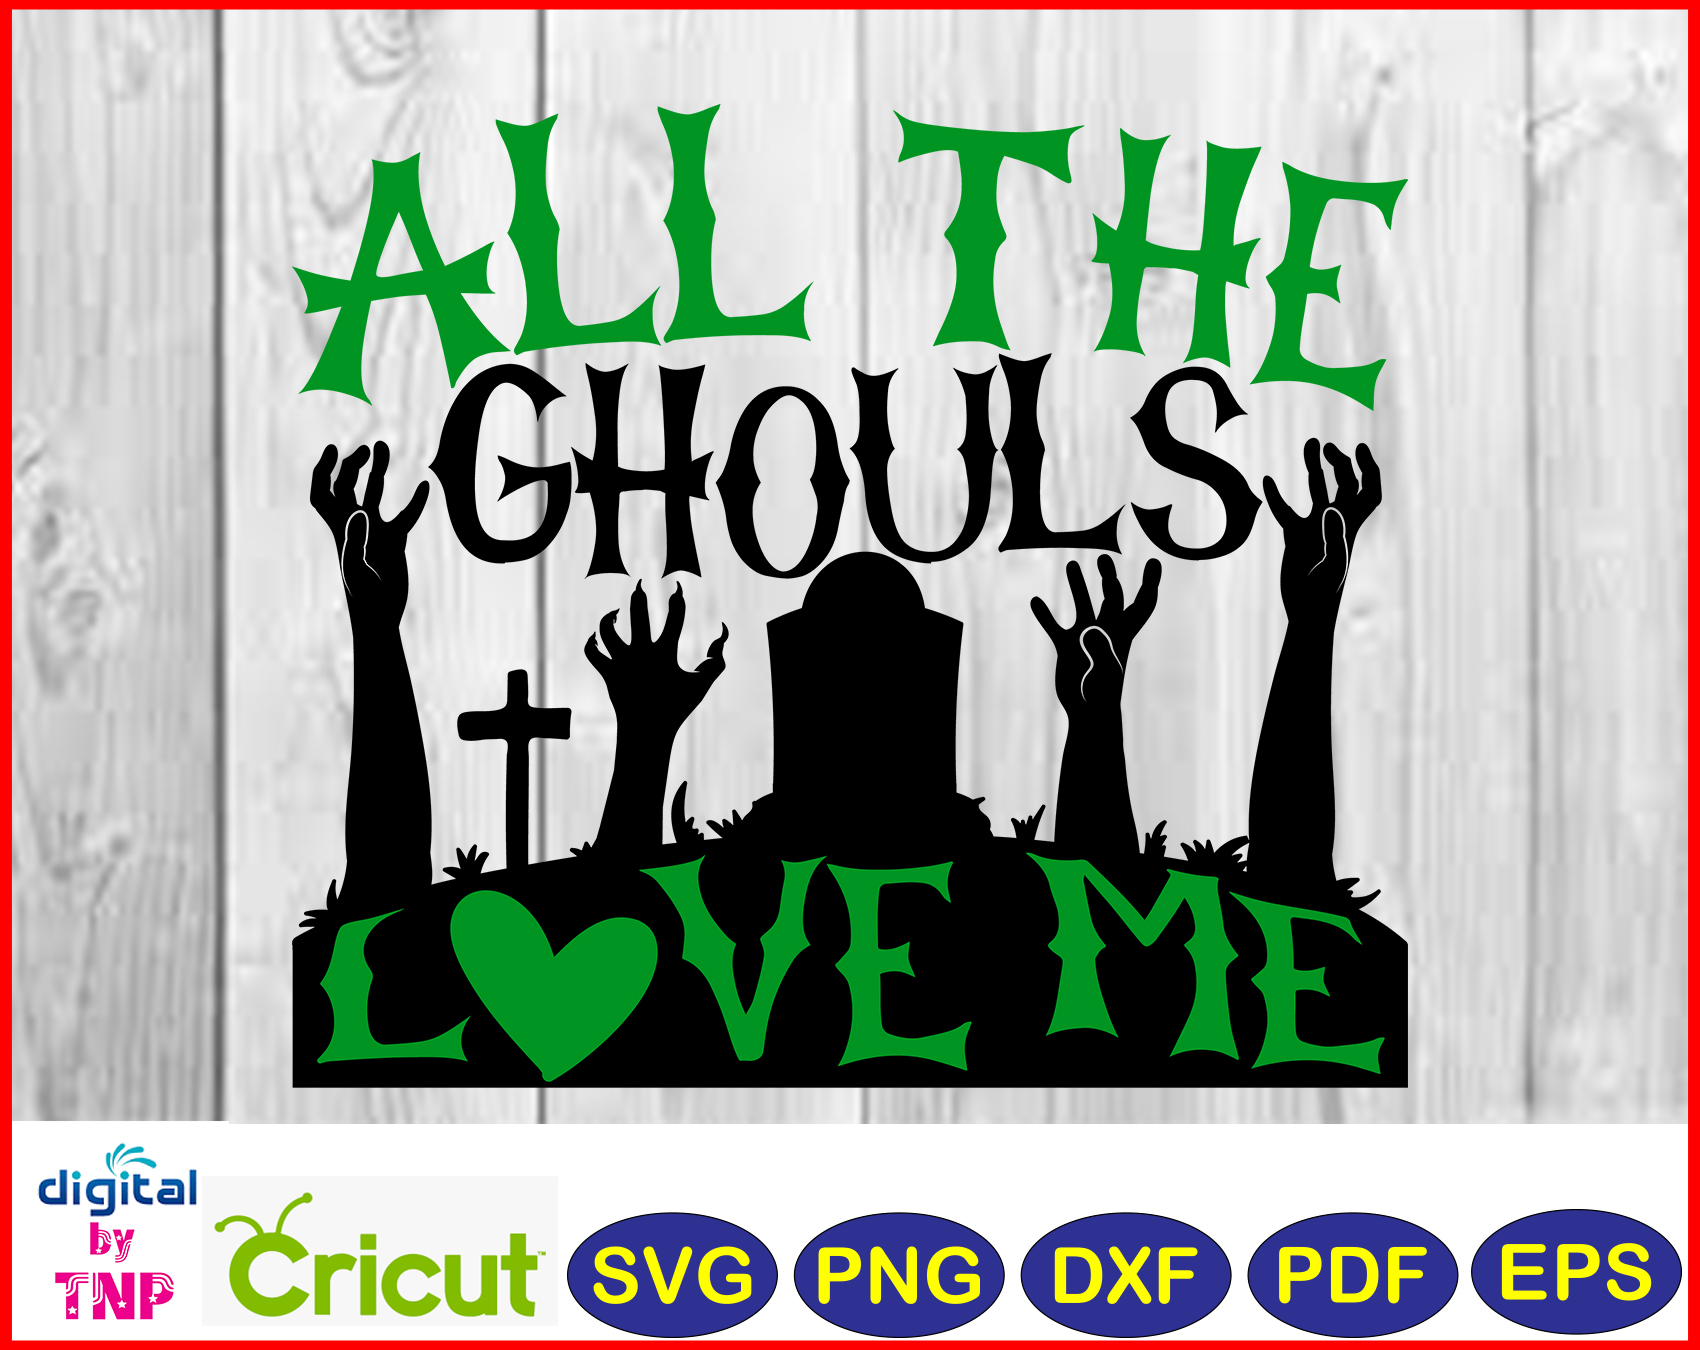 All The Ghouls Love Me Svg Png Dxf Pdf Eps Halloween Svg Layered Cut Files Cricut Customer Satisfaction Is Our Priority